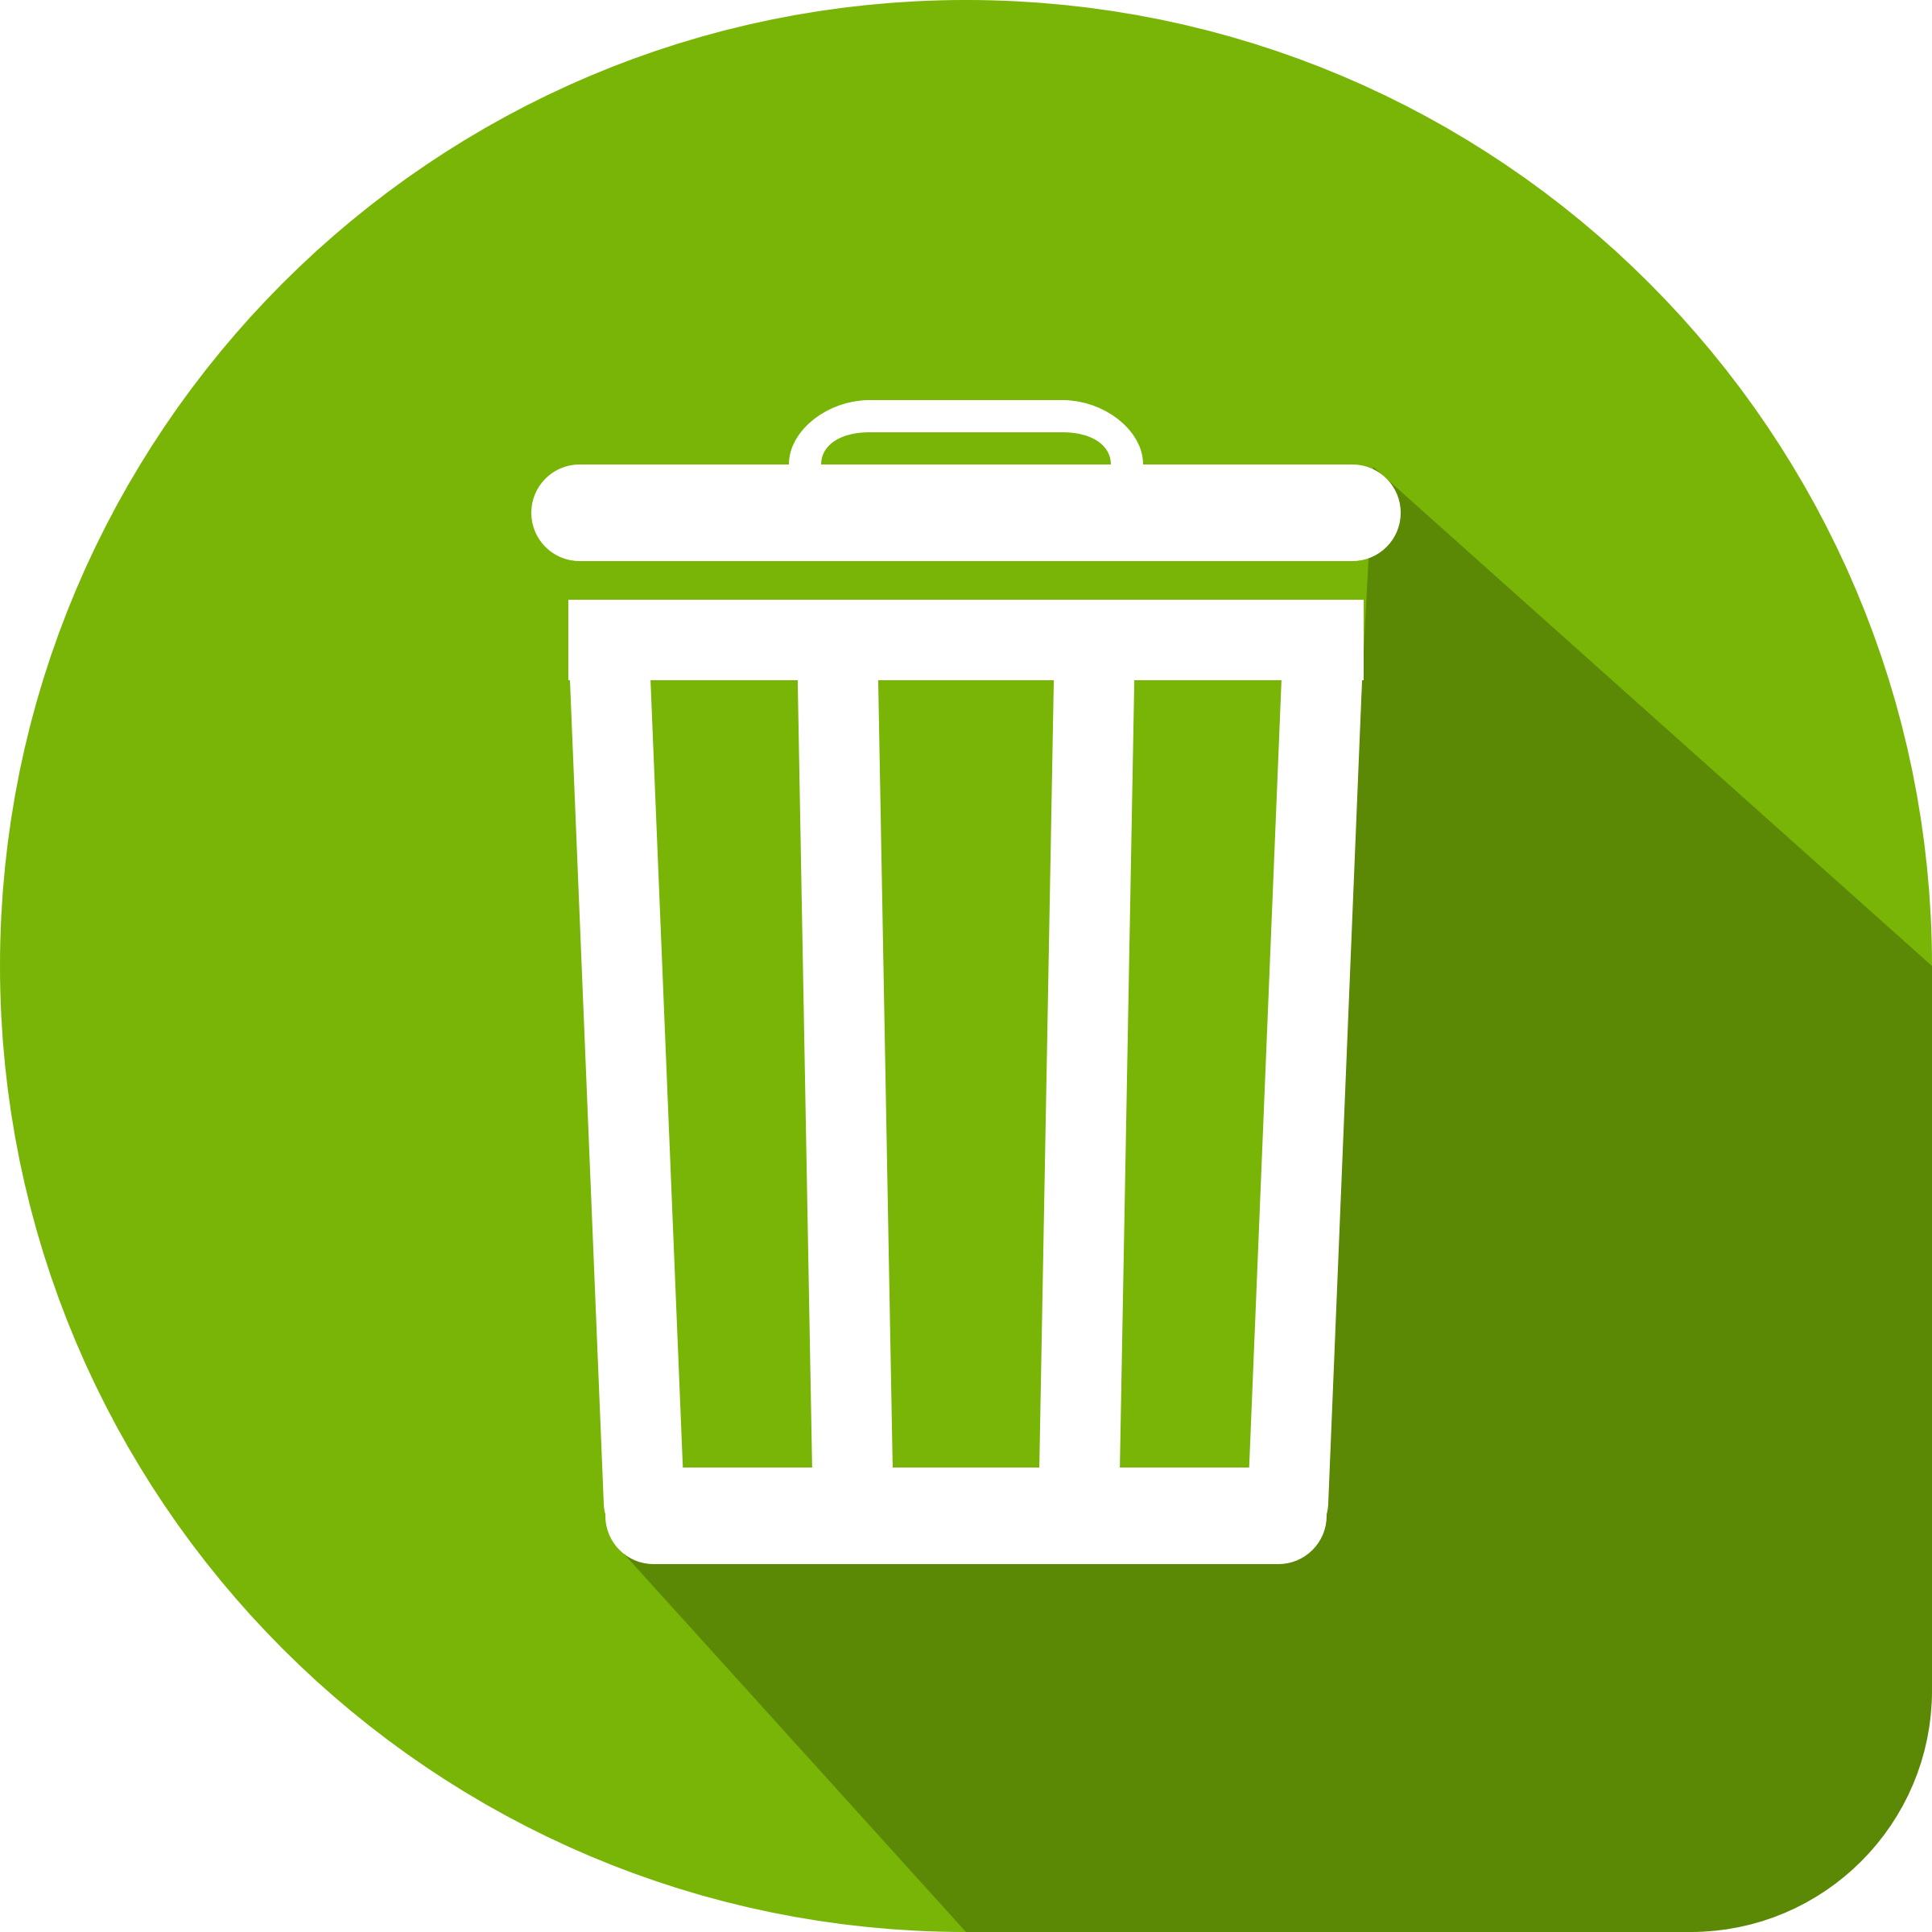 Recycle icon icons png. Water clipart bin